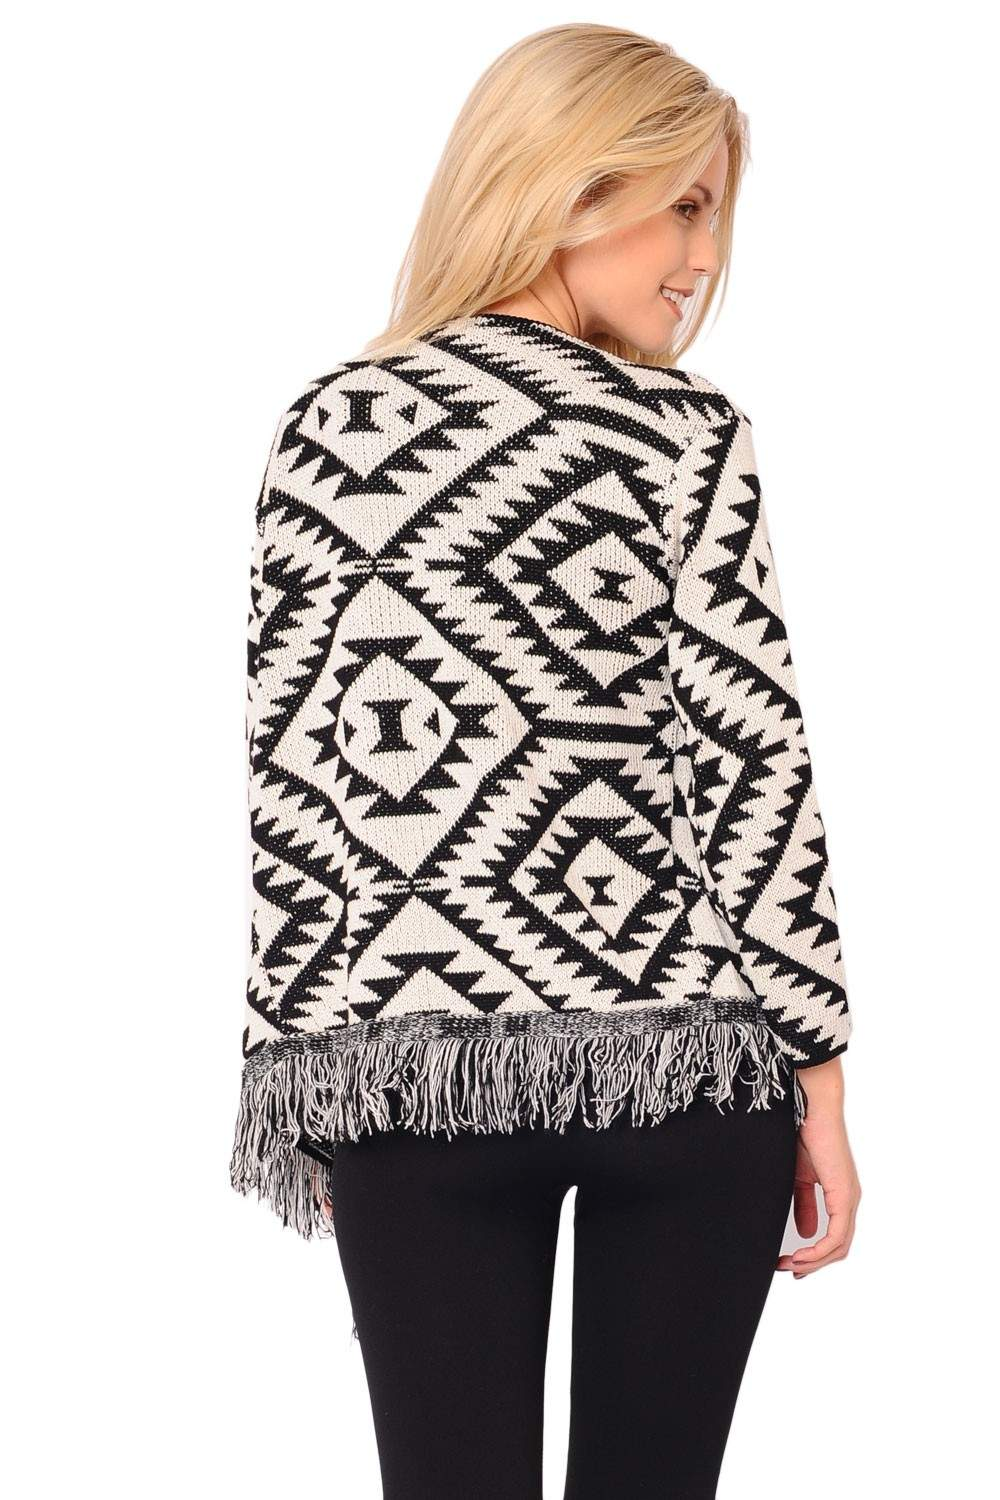 Frankie Aztec Waterfall Cardigan in Black and White | iCLOTHING